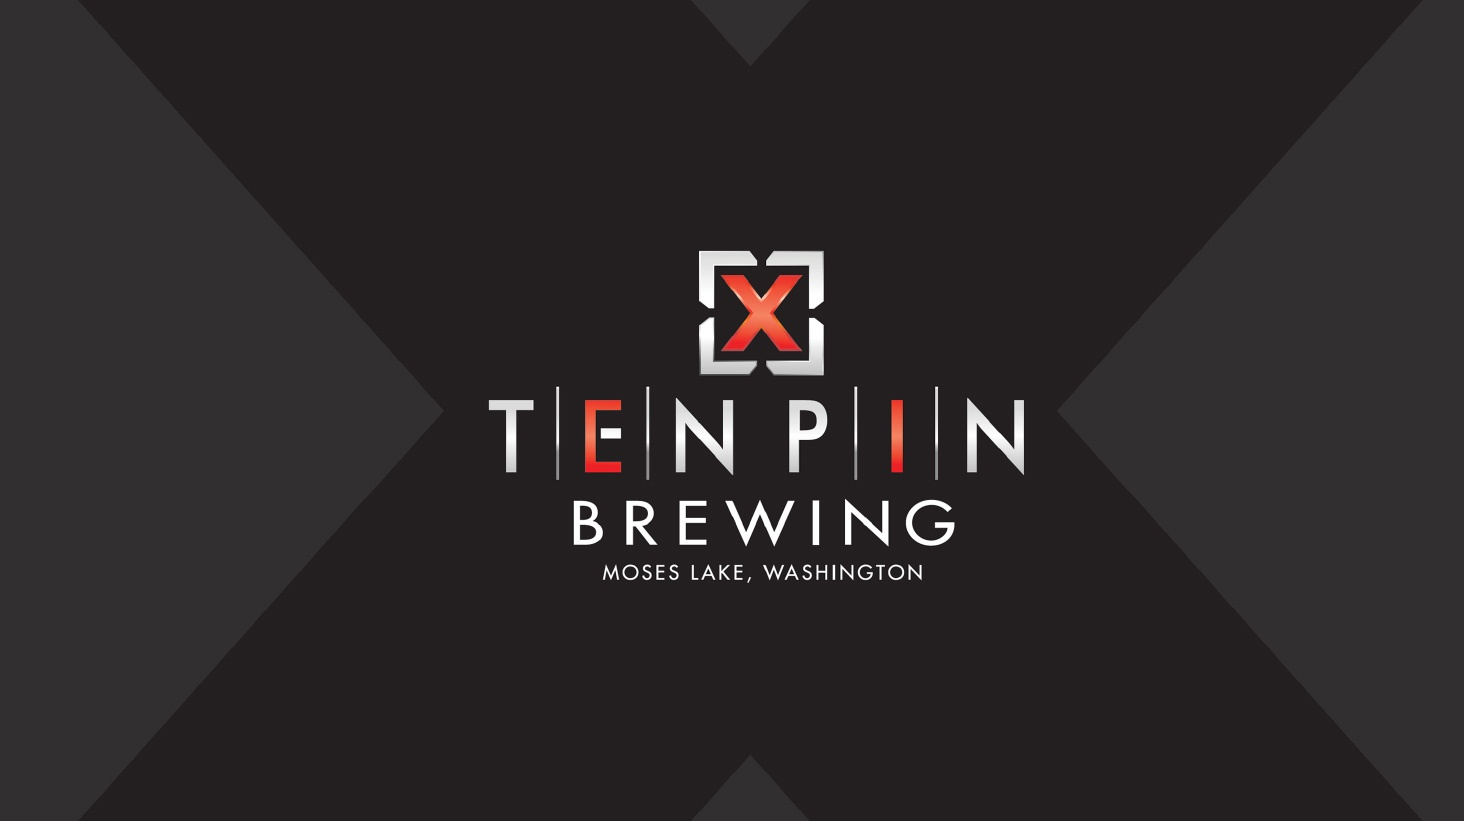 Create a sharp, sporty, bowling–inspired brewery logo